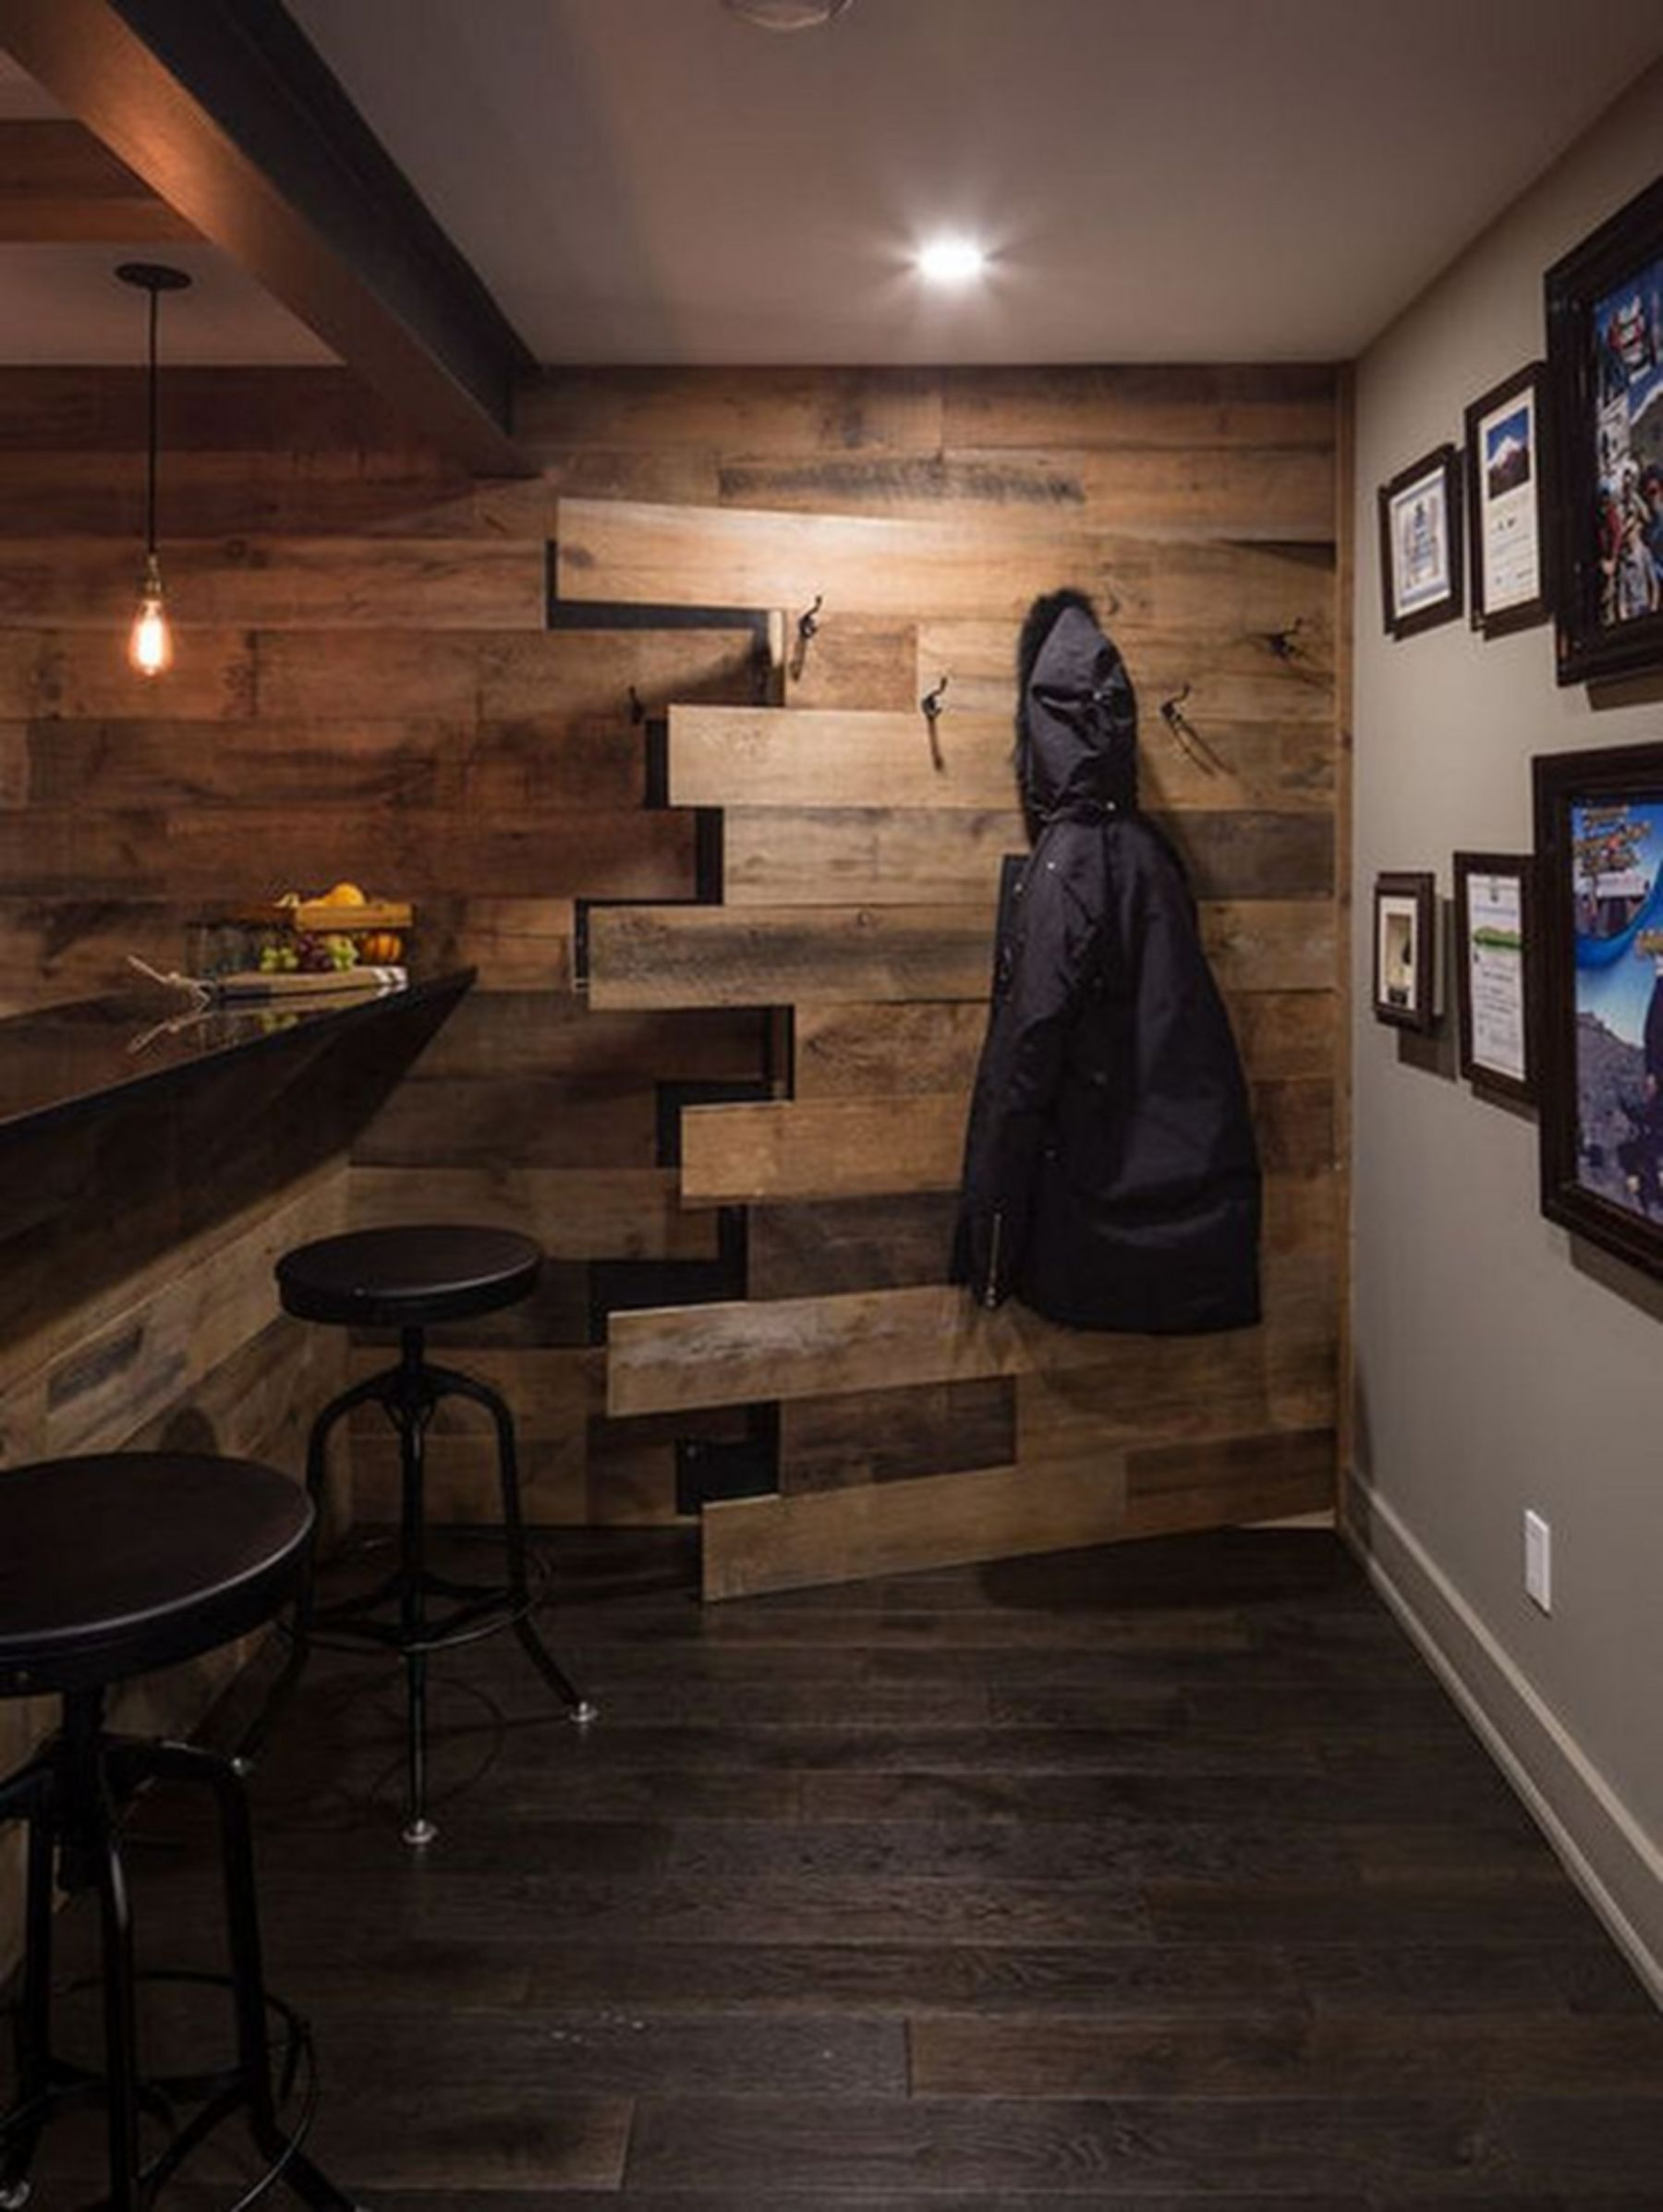 20 Best Garage Remodel Ideas To Be Amazing Room Rustic Basement Basement Remodeling Basement Design